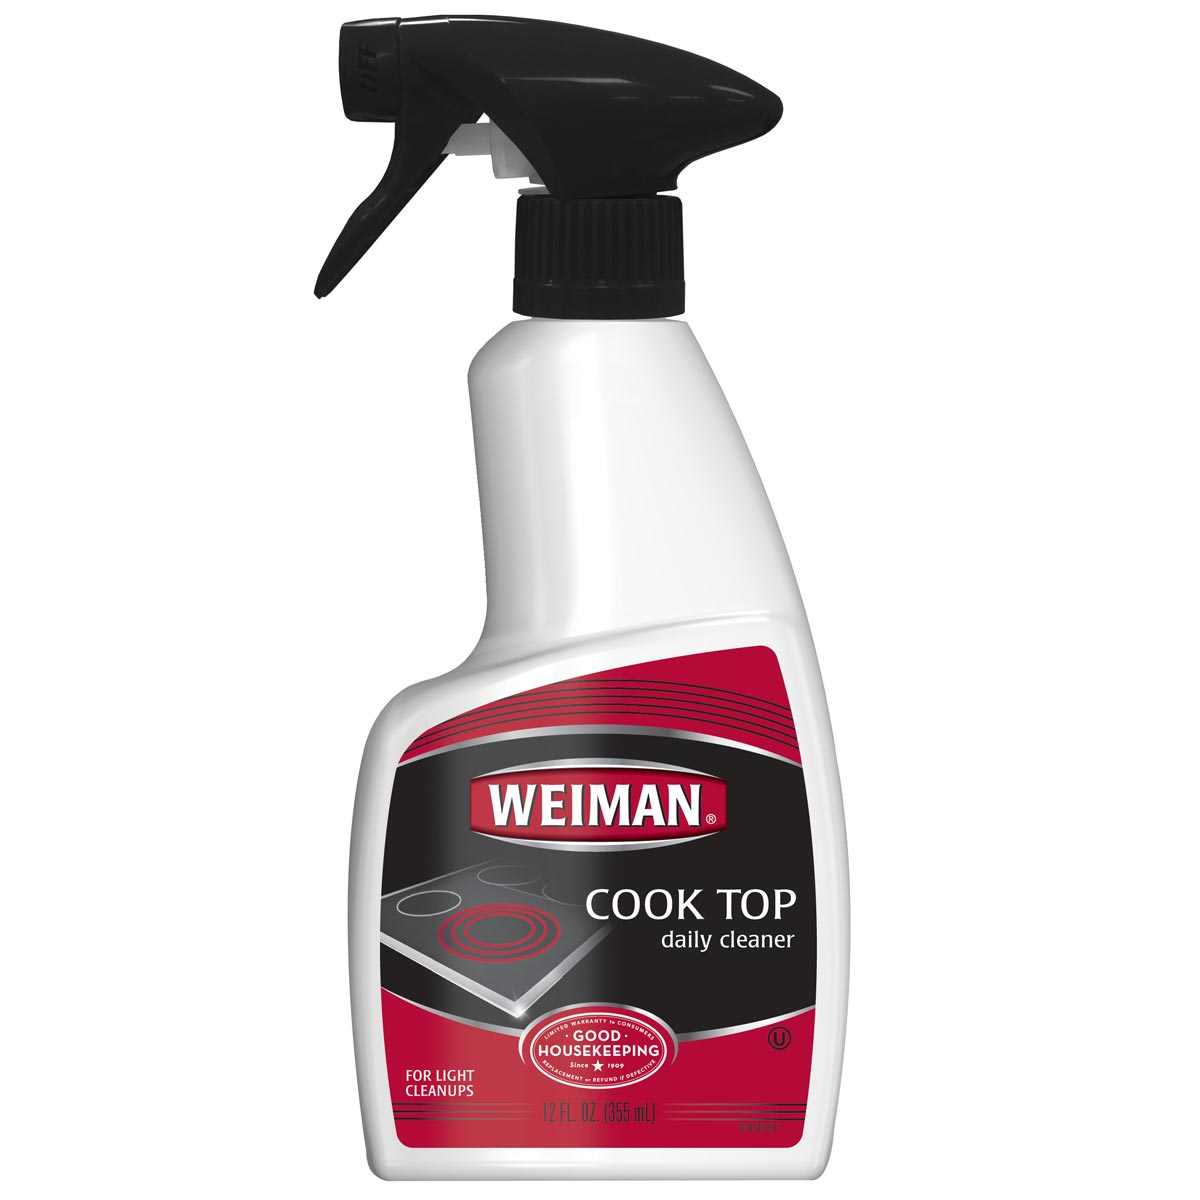 https://googone.com/media/catalog/product/w/e/weiman-cooktop-daily-cleaner_front.jpg